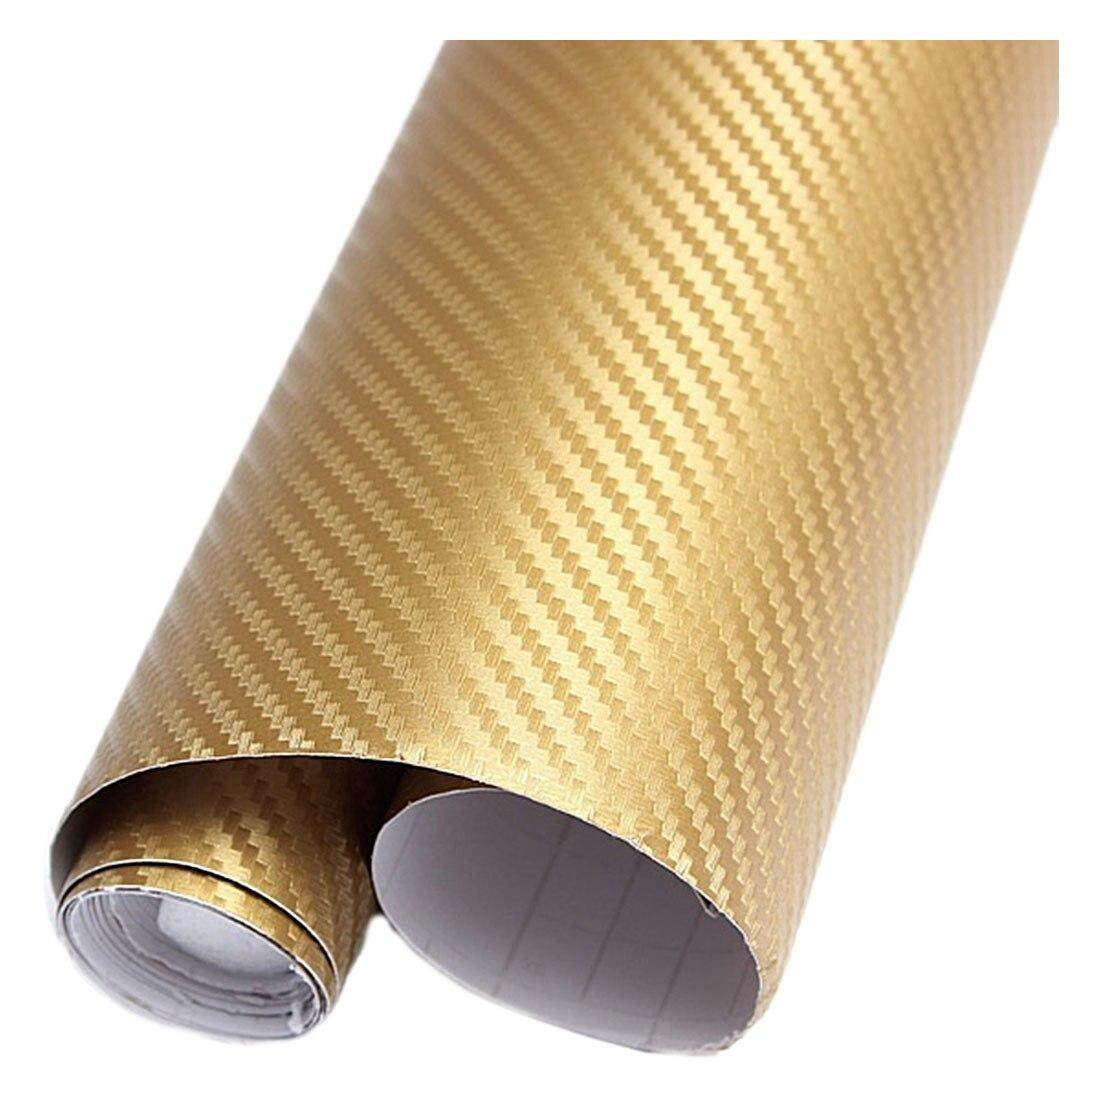 3D Carbon Fiber Decal Vinyl Film Wrap Roll Adhesive Car Sticker Sheet Gold